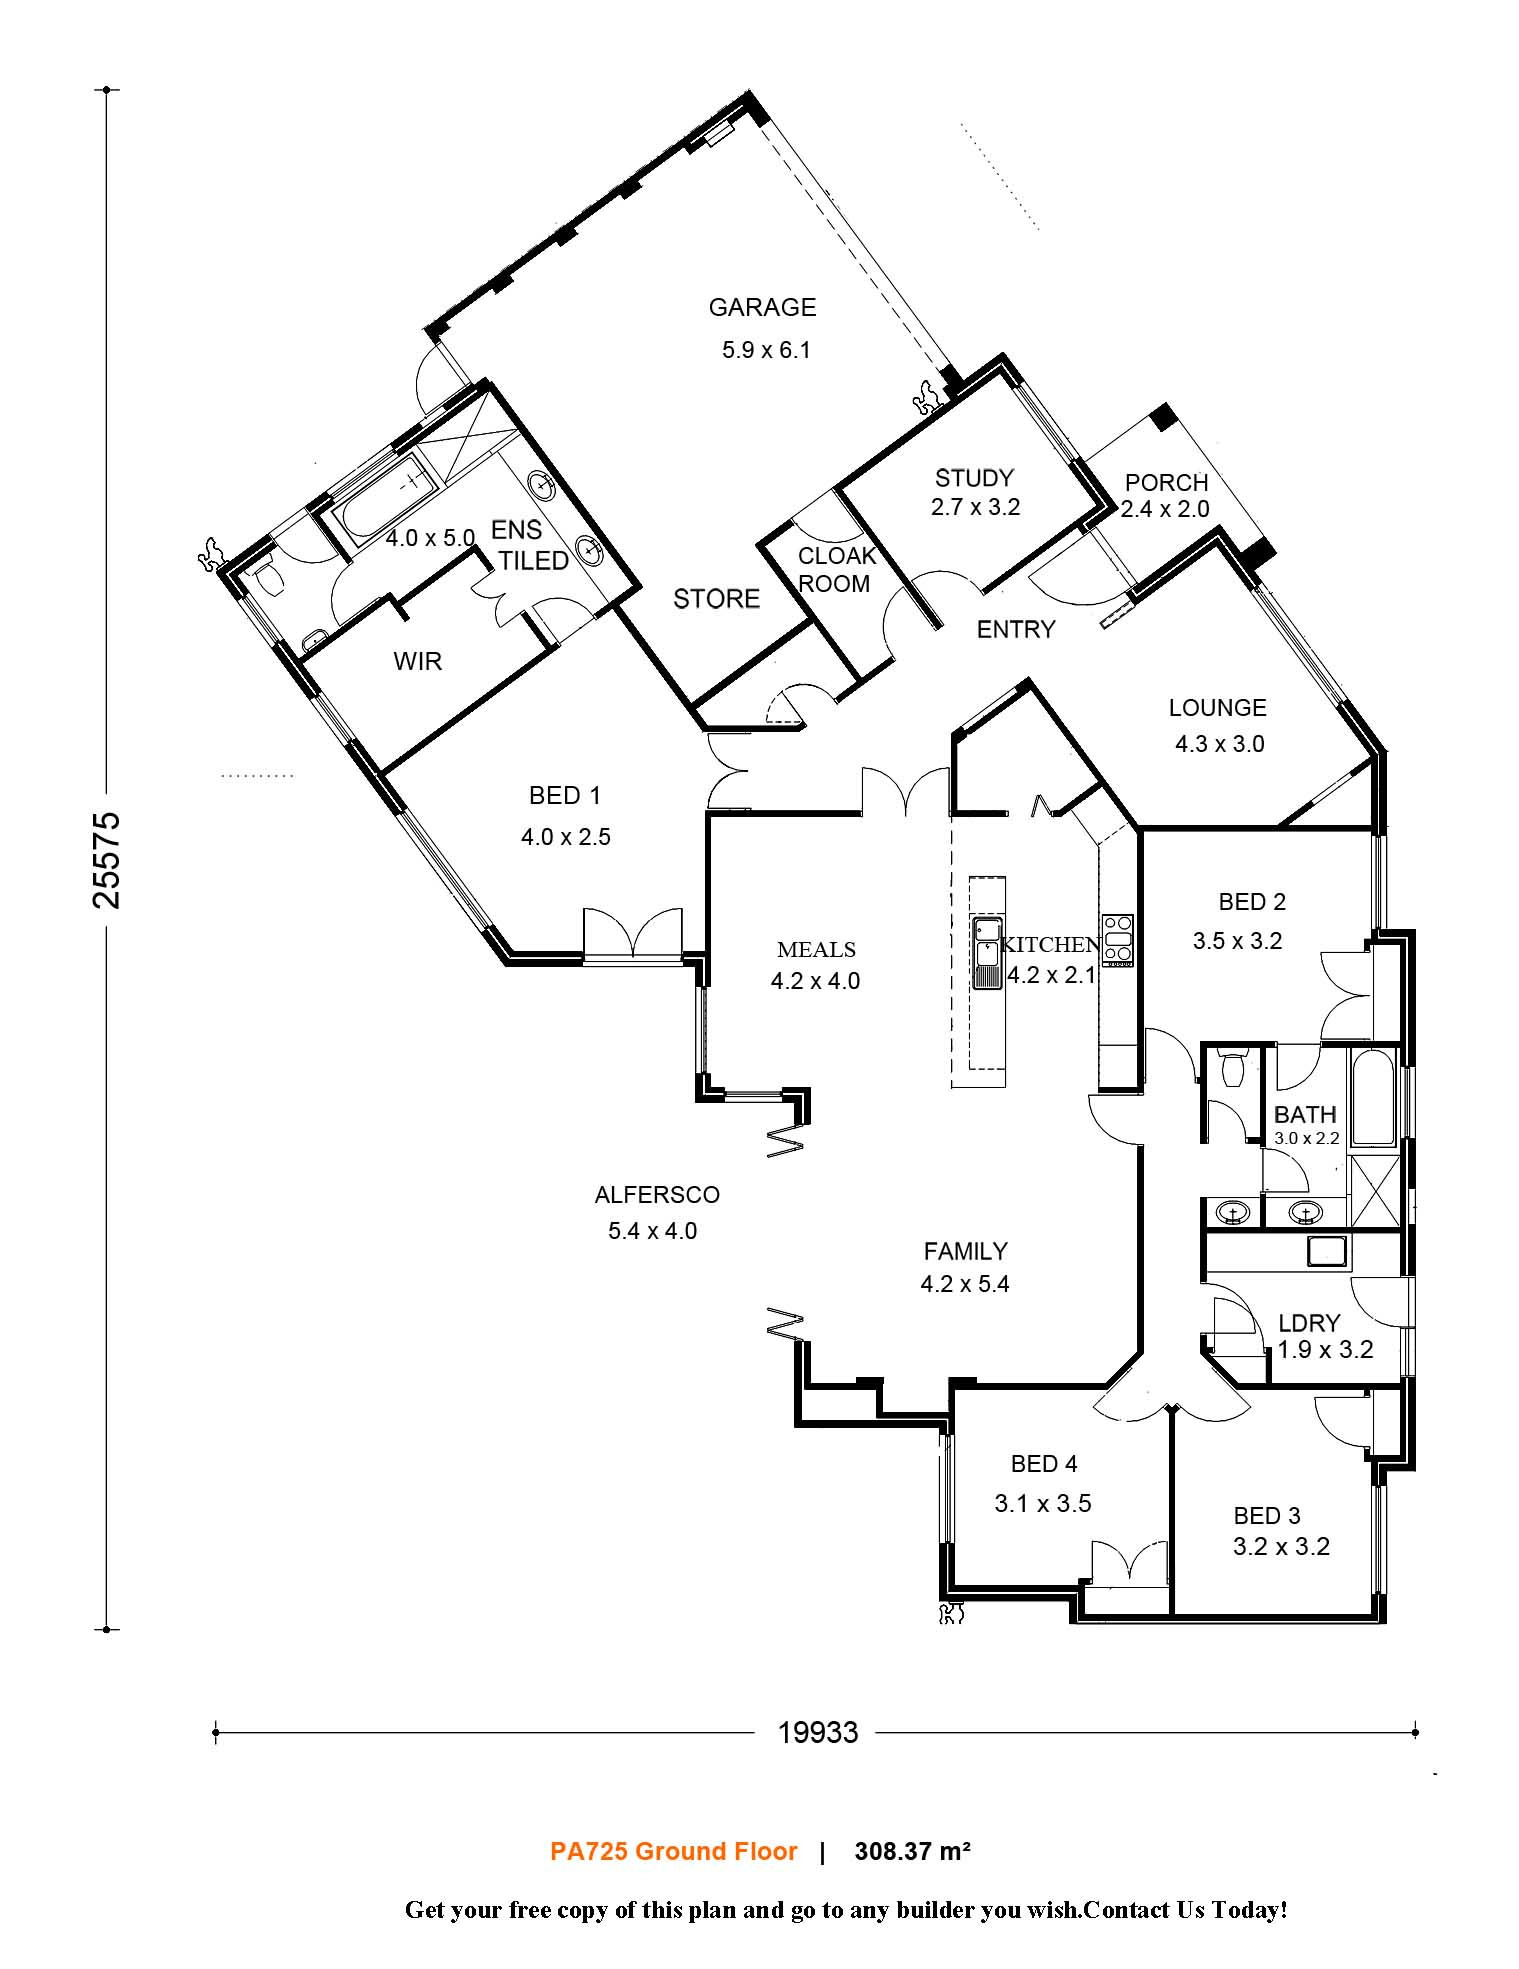 Single Story Modern House Designs south Africa Fresh House Plans Single Story Bedroom Modern Hd south Africa